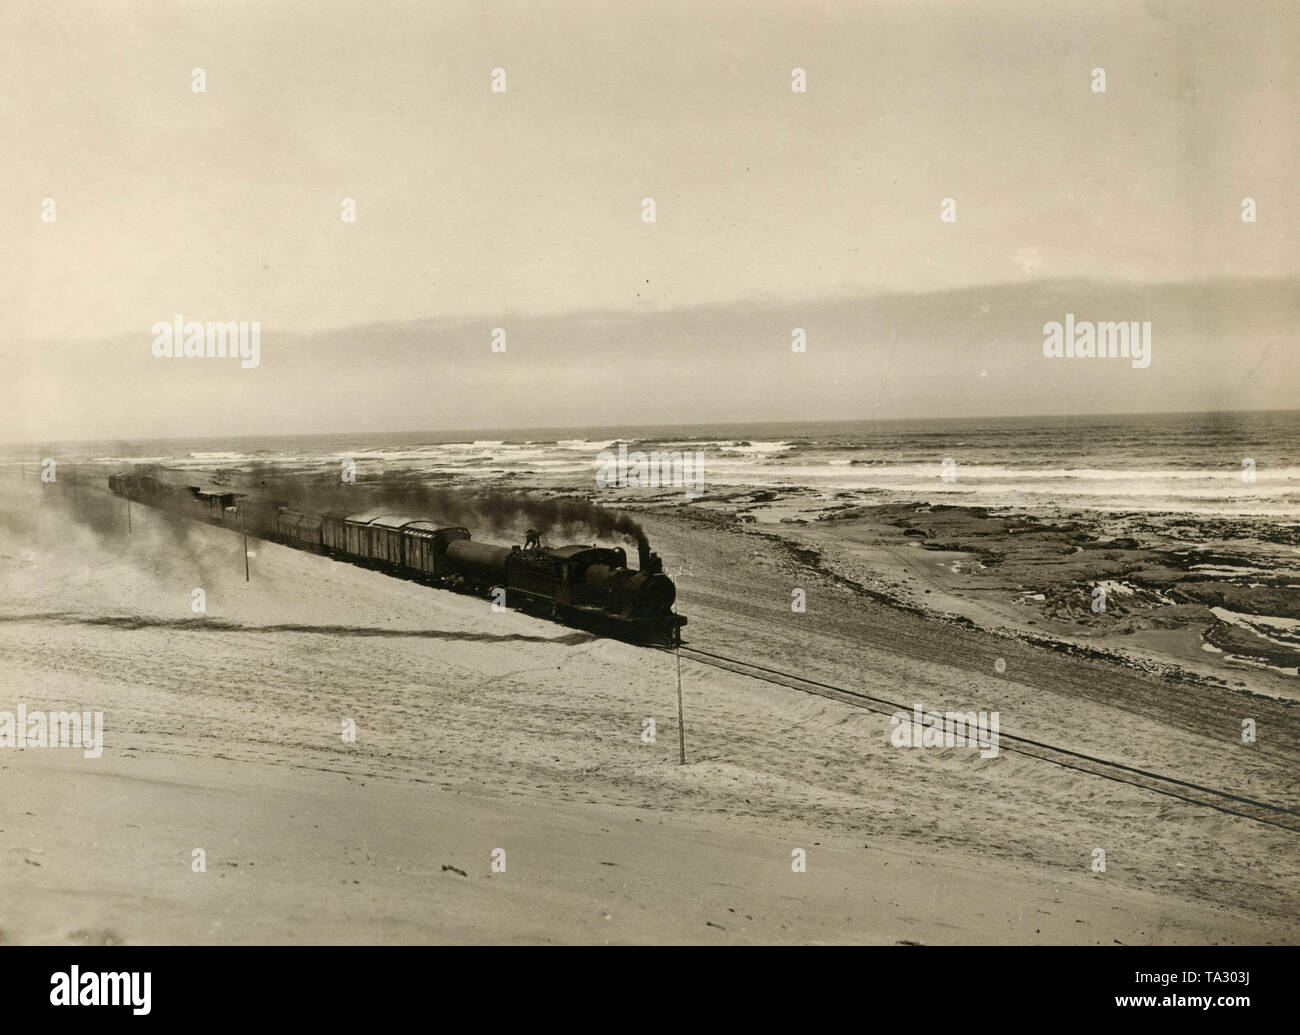 The Otavi Railway in the Walvis Bay near Swakopmund, in the former German colony of German South West Africa. - Stock Image